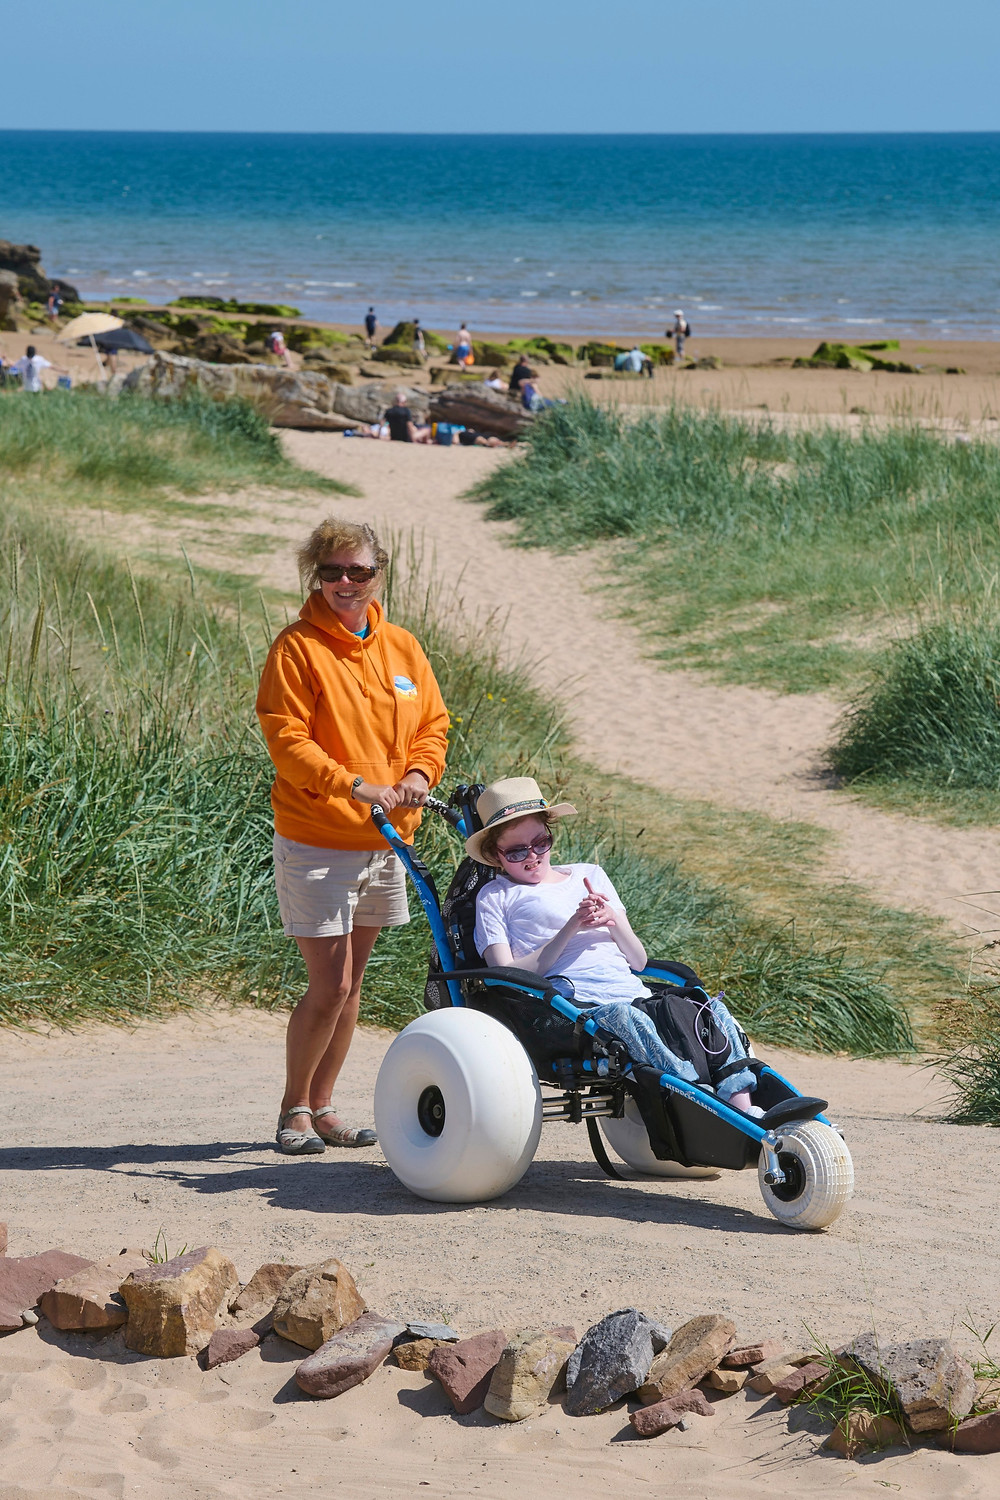 Joanne Murray hits the beach with help from Jenny Shearer from the Dornoch Beach Wheelchairs. The purchase of an electric all-terrain wheelchair means users will be in control of their seaside visit.